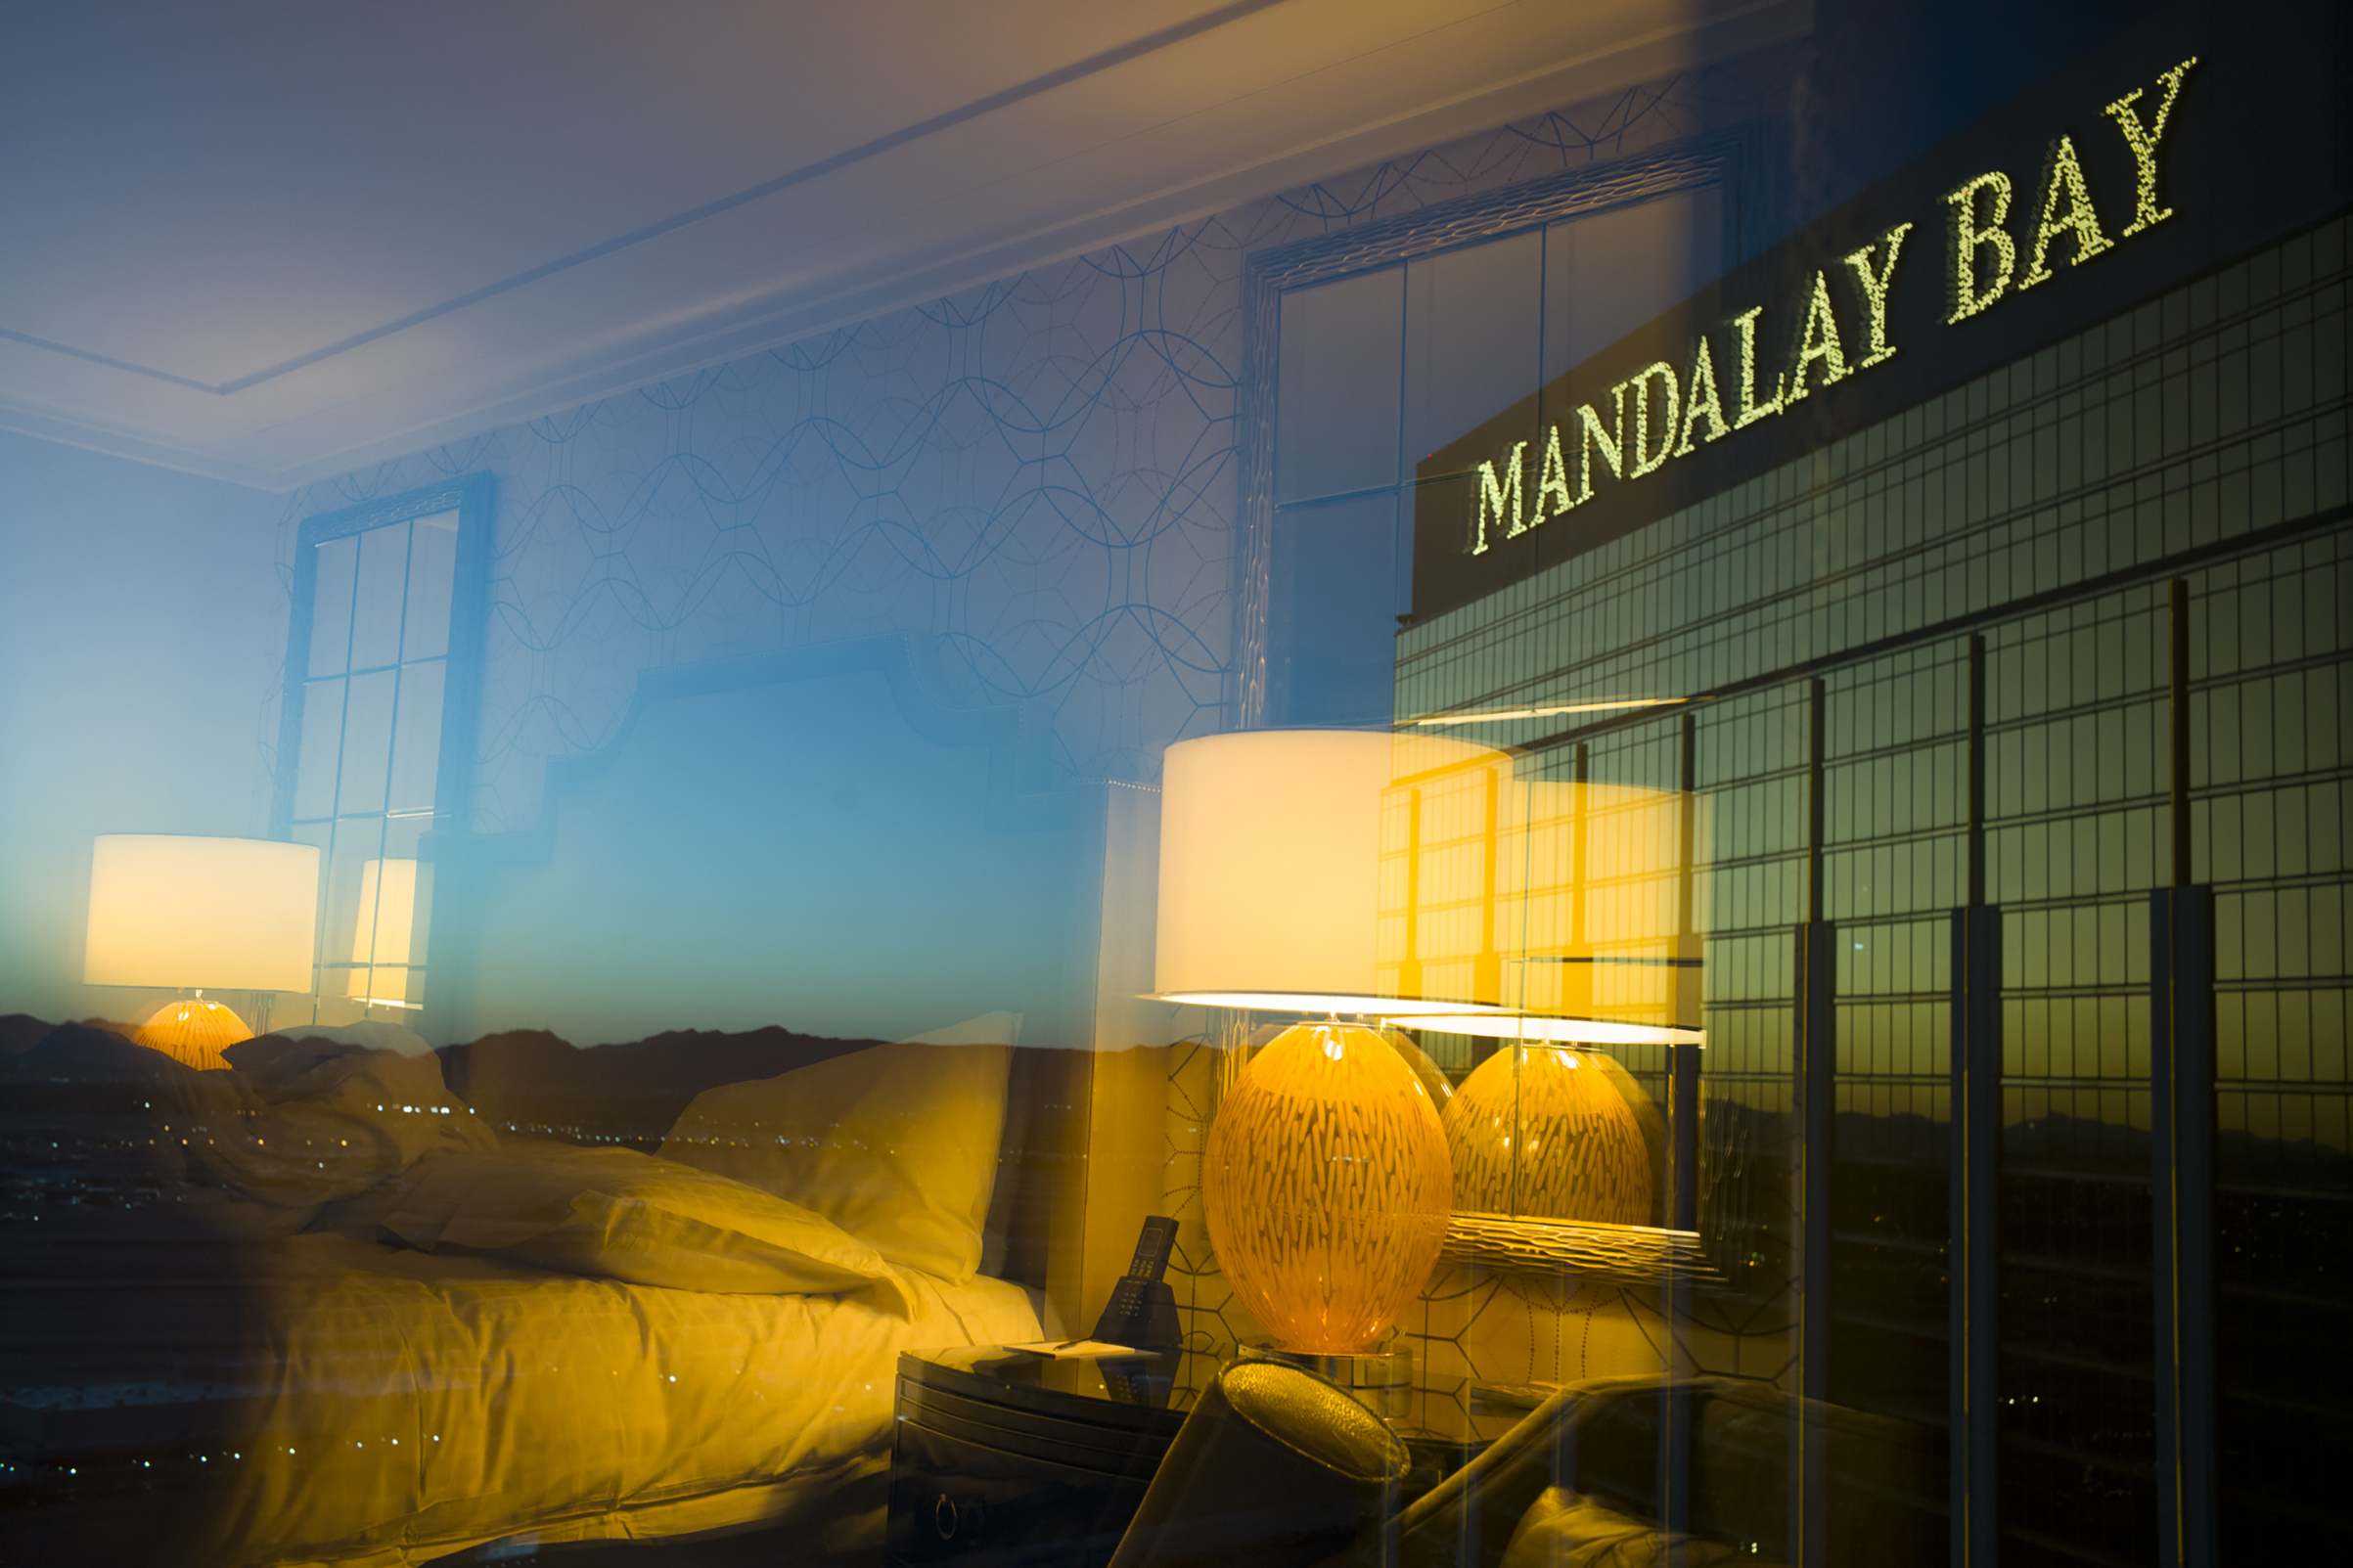 Photographer's hotel room is reflected on to the window that he is shooting through, on the other side of the glass is the Mandalay Bay Hotel sign, Oct. 3, 2017.